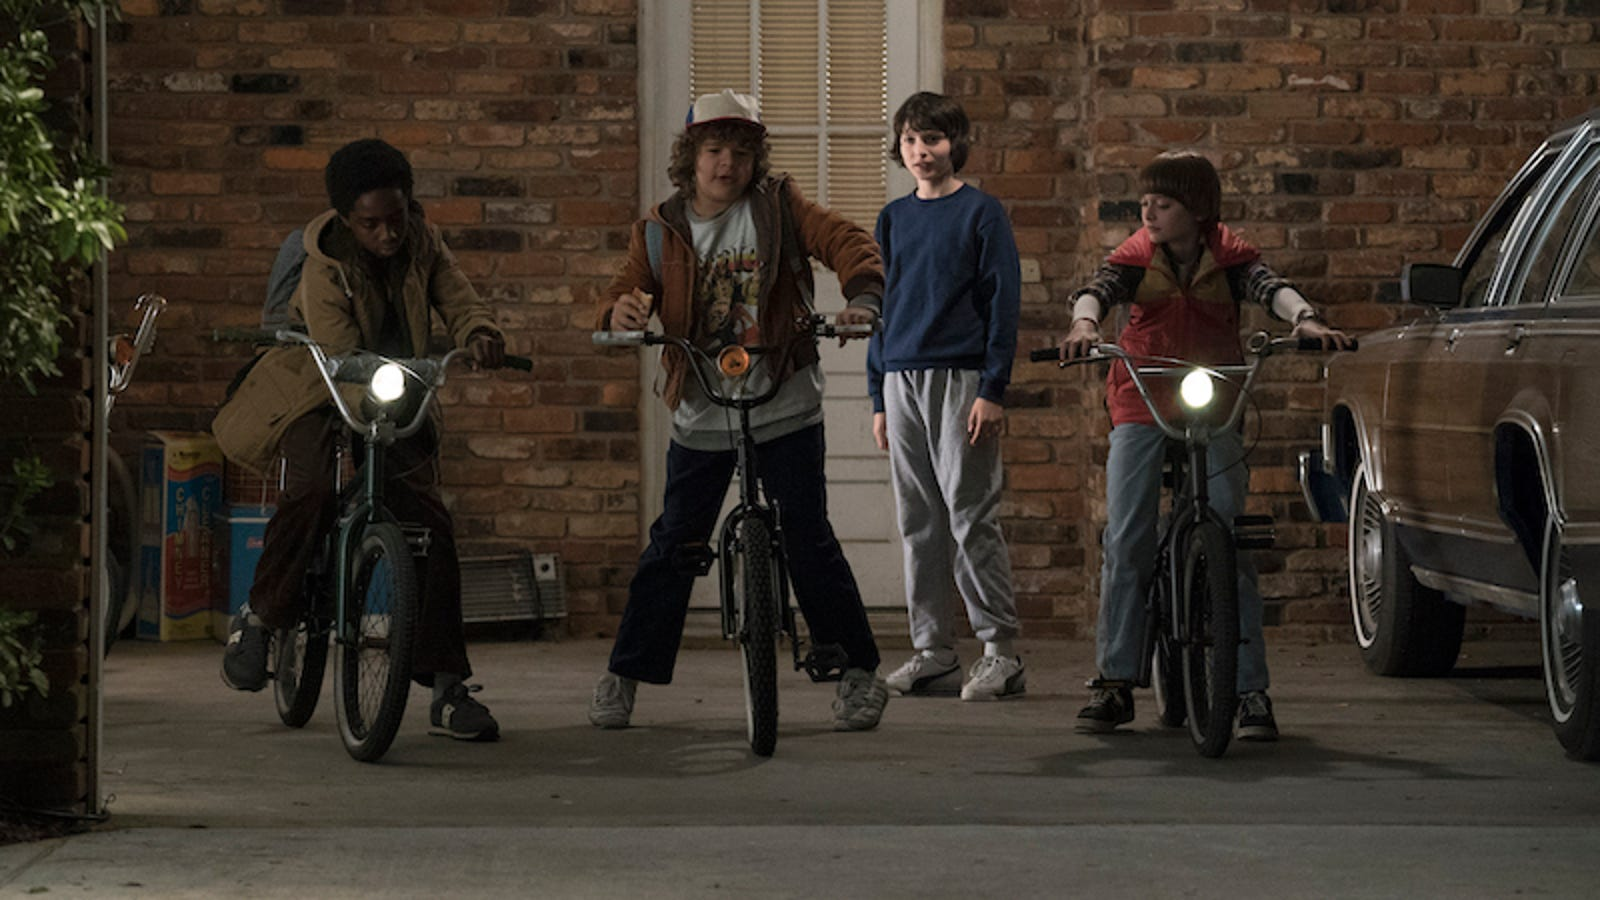 Netflix Finally Renews Stranger Things, and Here's the First Teaser for Season Two